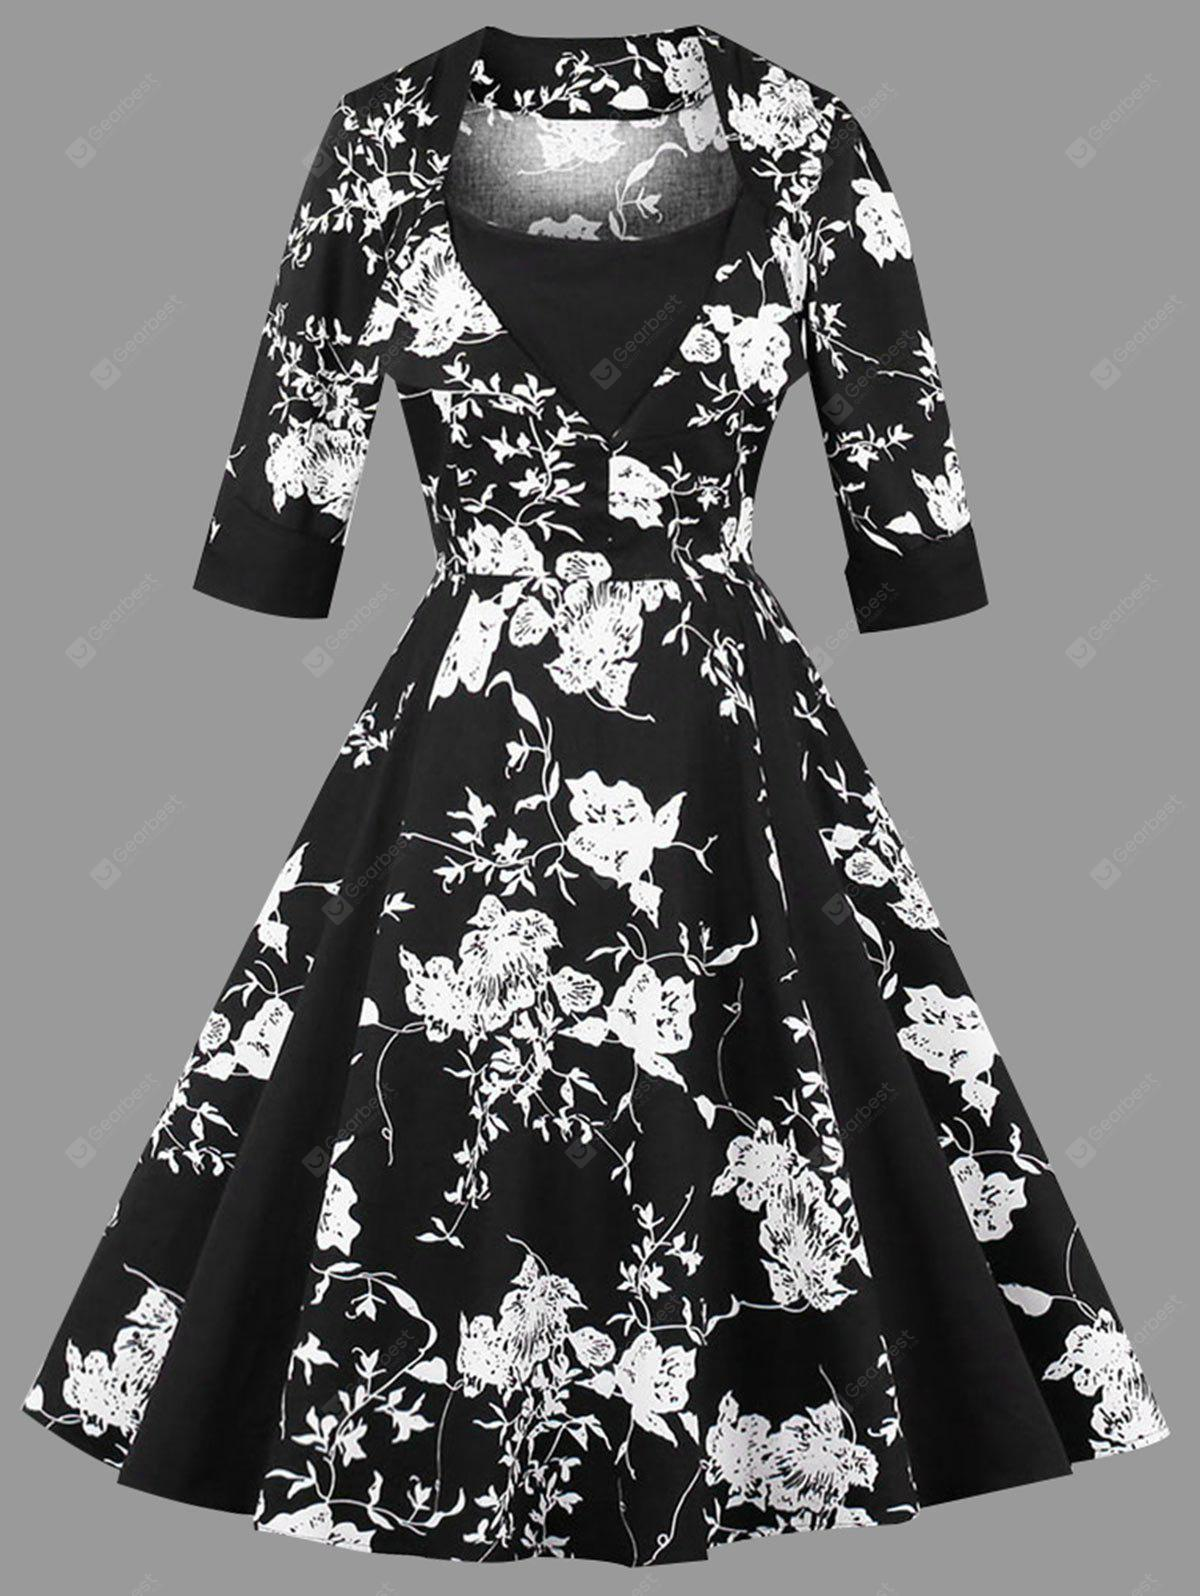 Floral Print Vintage Plus Size Dress